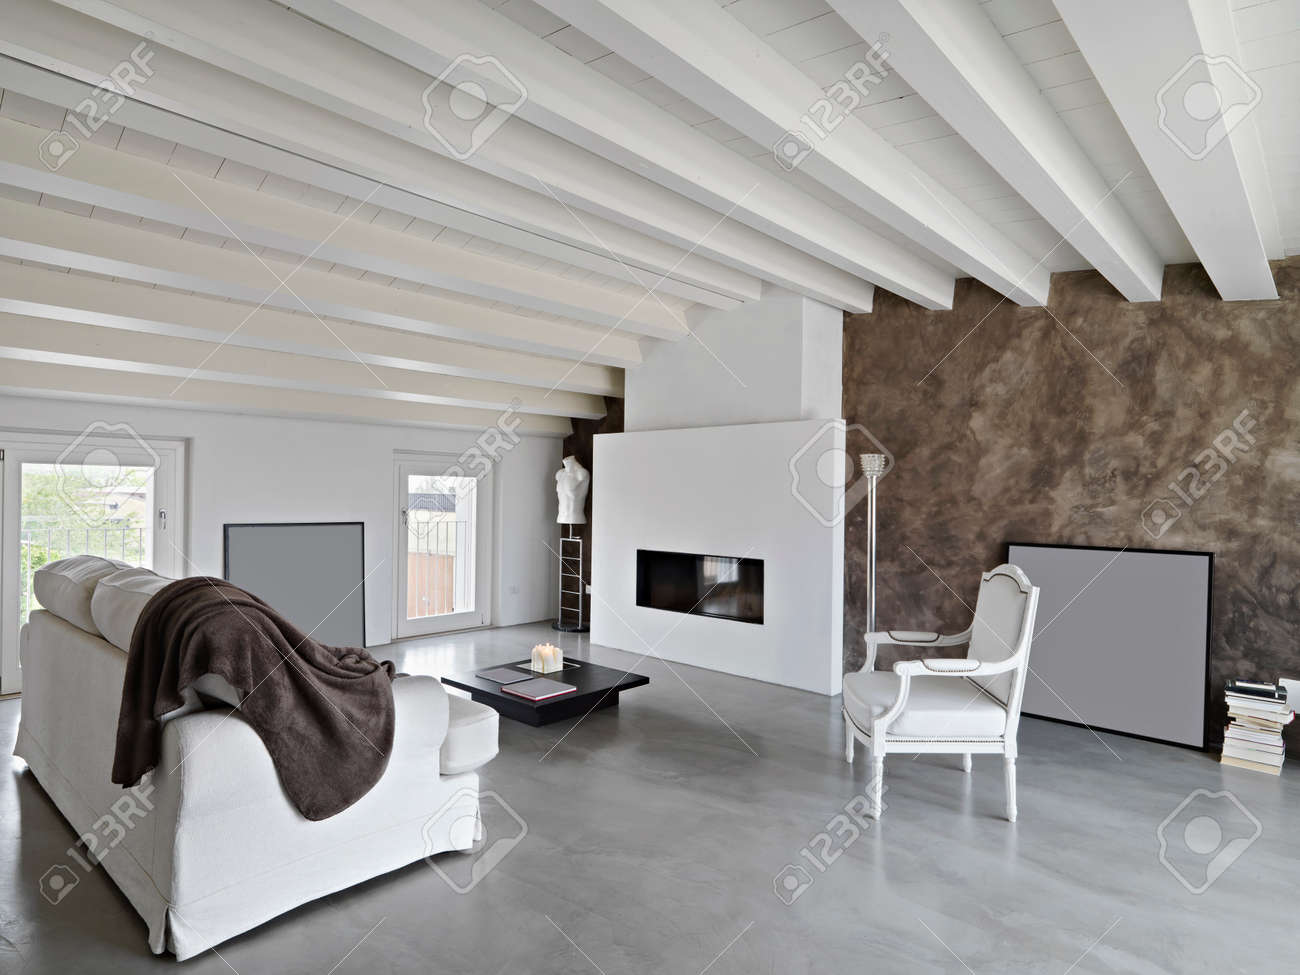 Perfect Modern Living Room With Fireplace And Sofa In The Attic Stock Photo    25456552